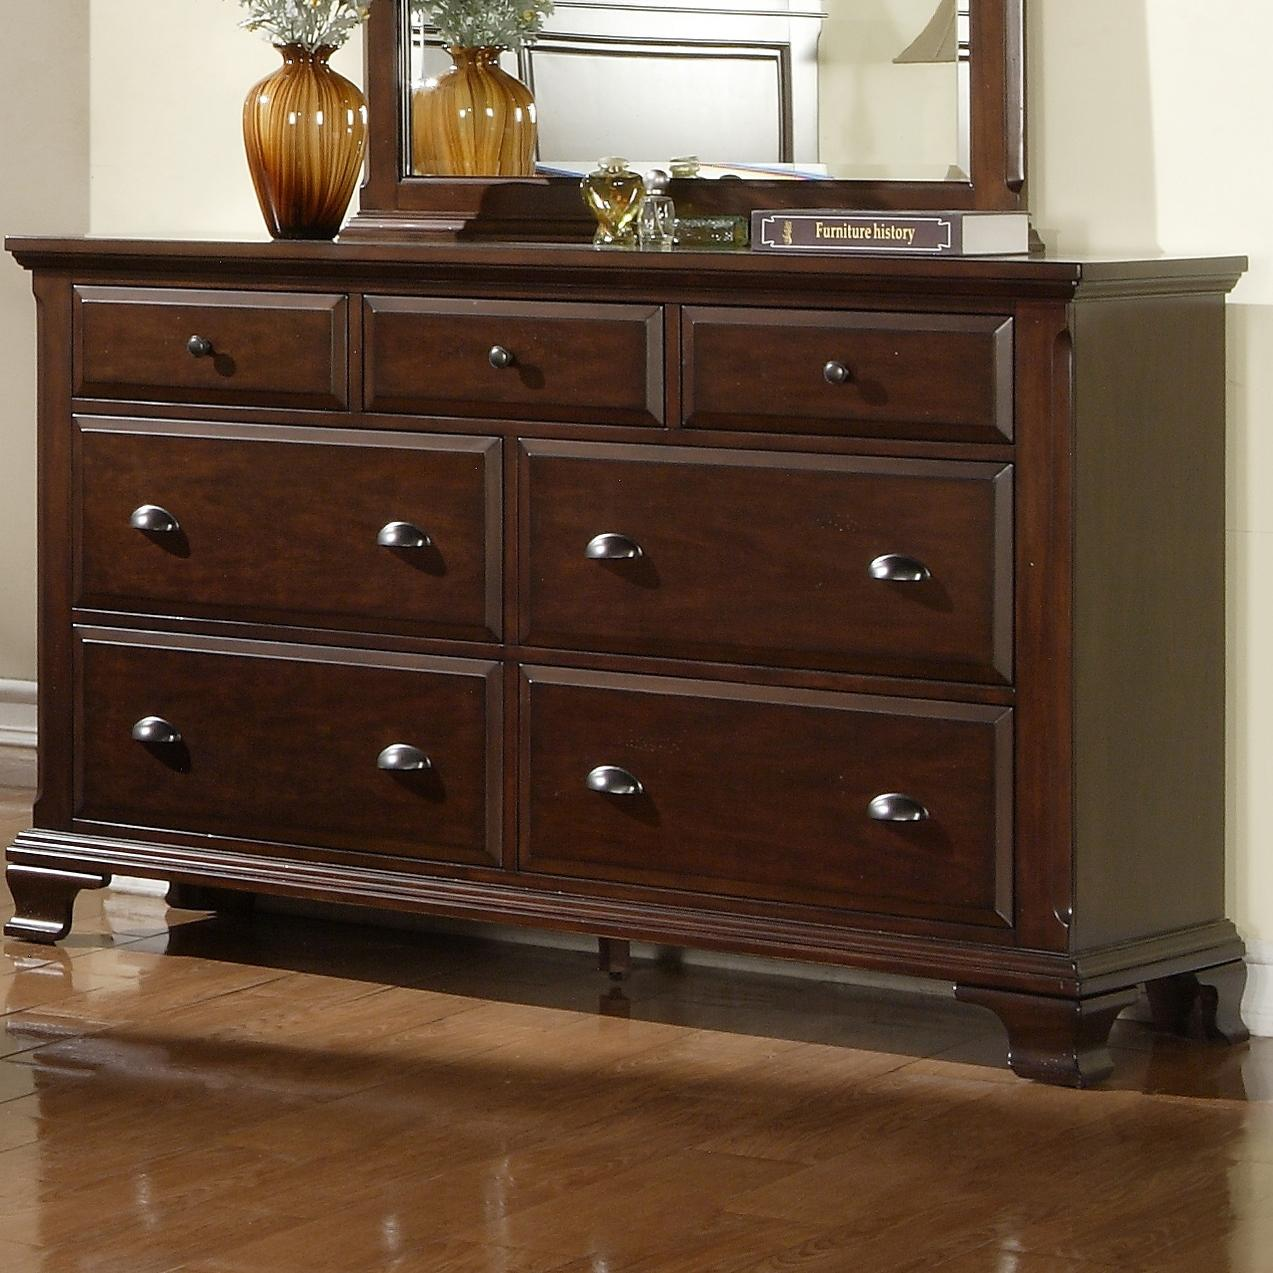 Furniture Store Canton Mi Elements International Canton 7 Drawer Dresser Vandrie